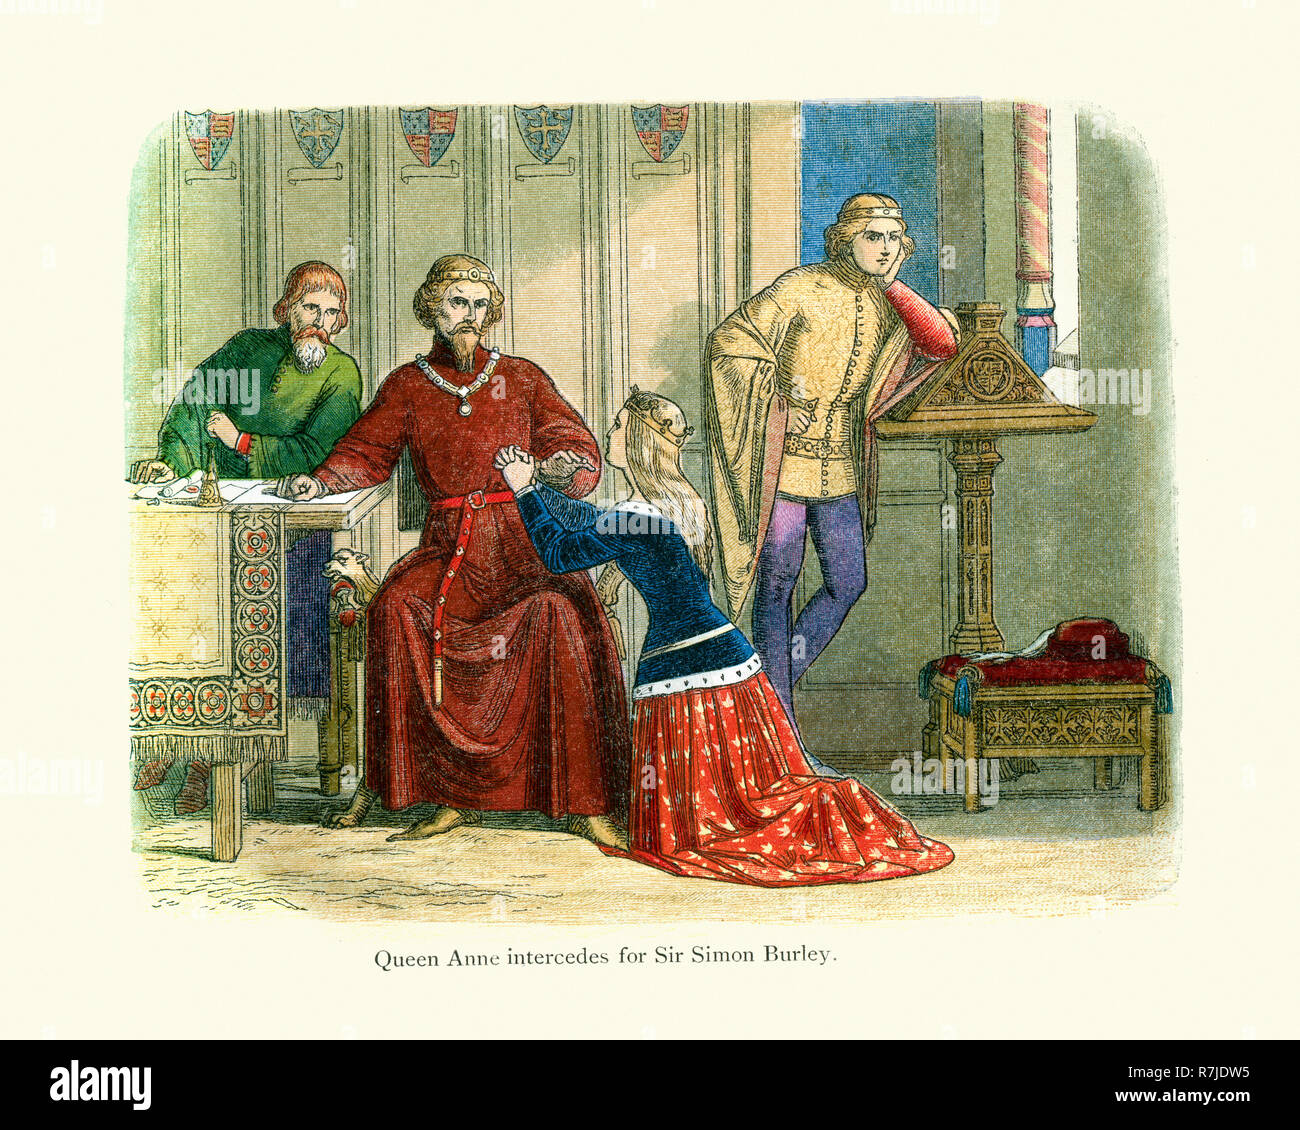 Queen Anne intercedes for Sir Simon Burley to Gloucester and Arundel who remained deaf to every entreaty. King Richard II therefore unwillingly had Si - Stock Image